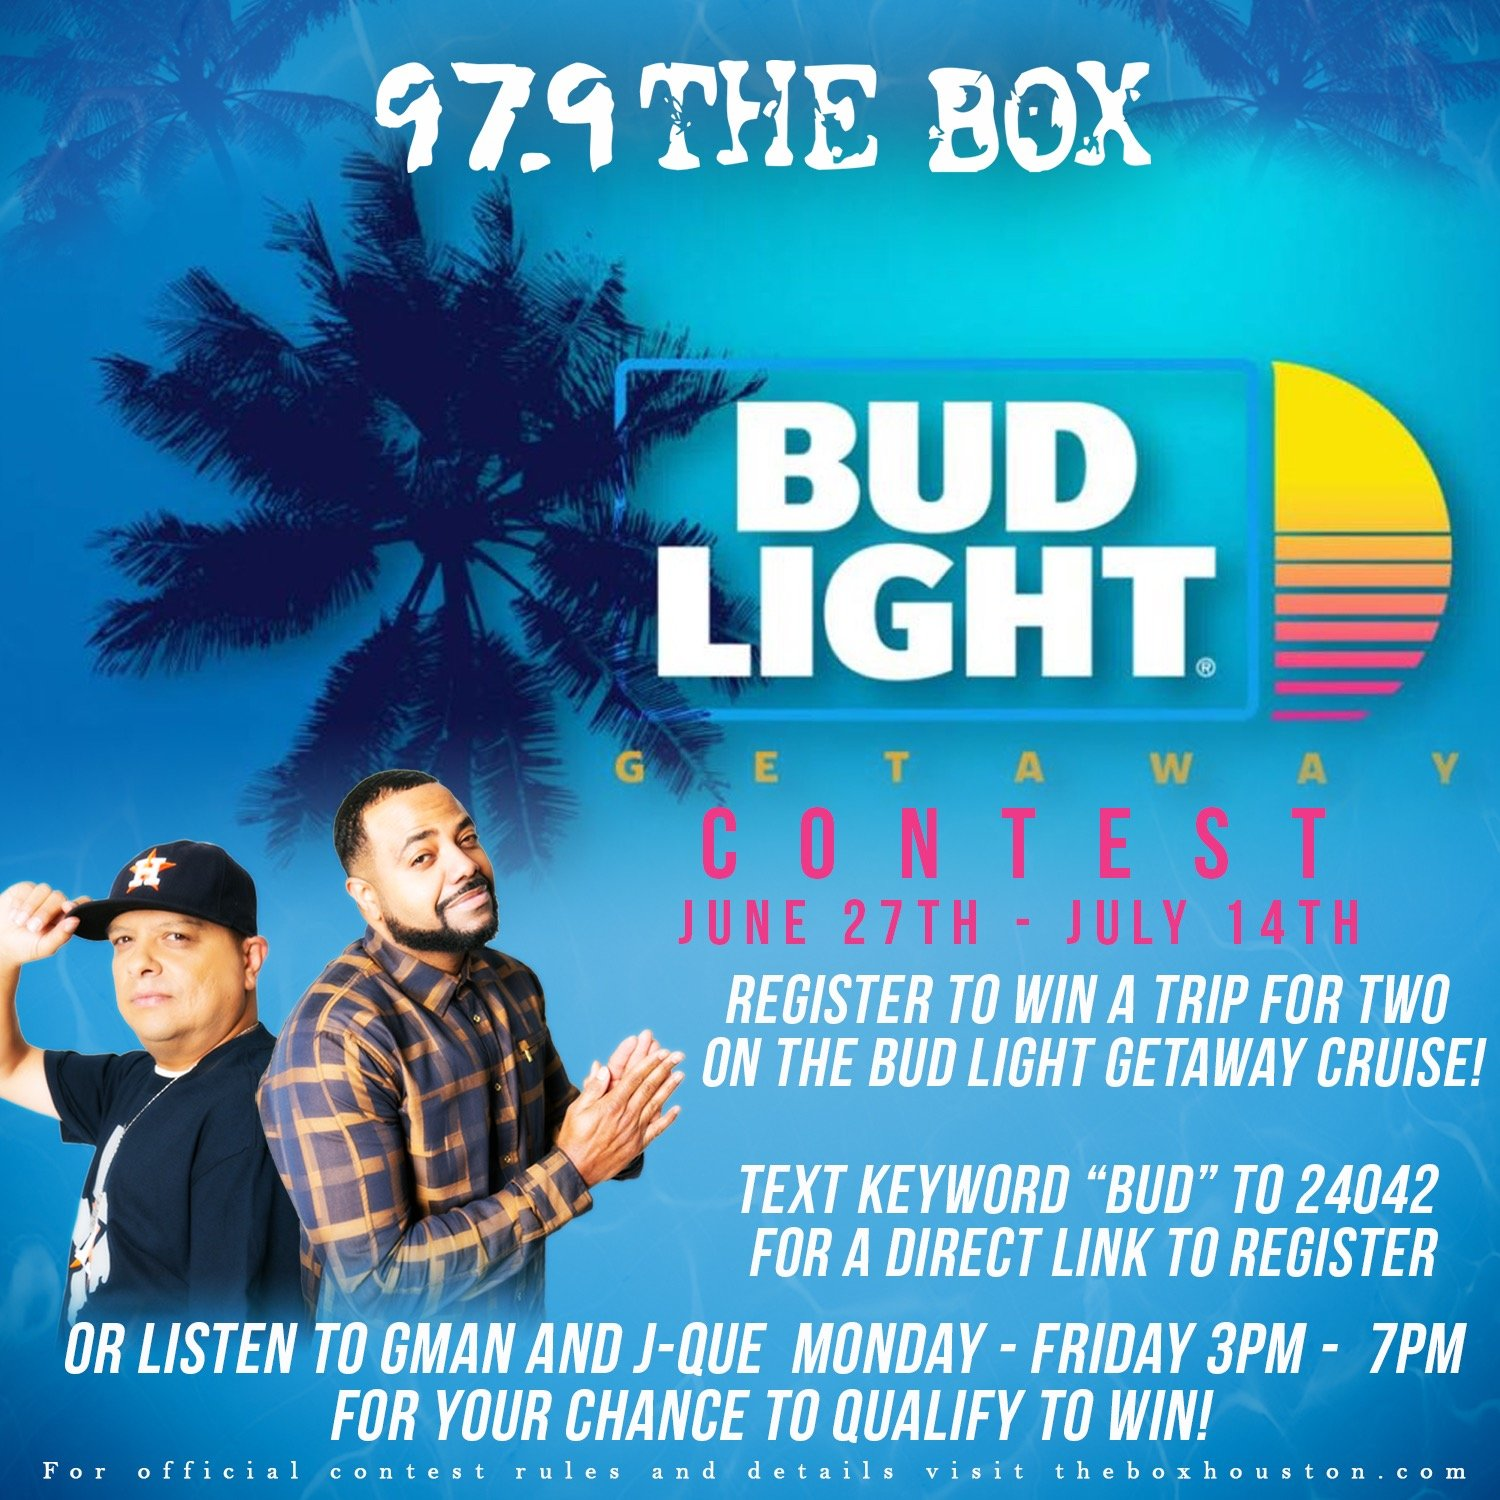 Register To Win A Trip For Two On The Bud Light Getaway Cruise